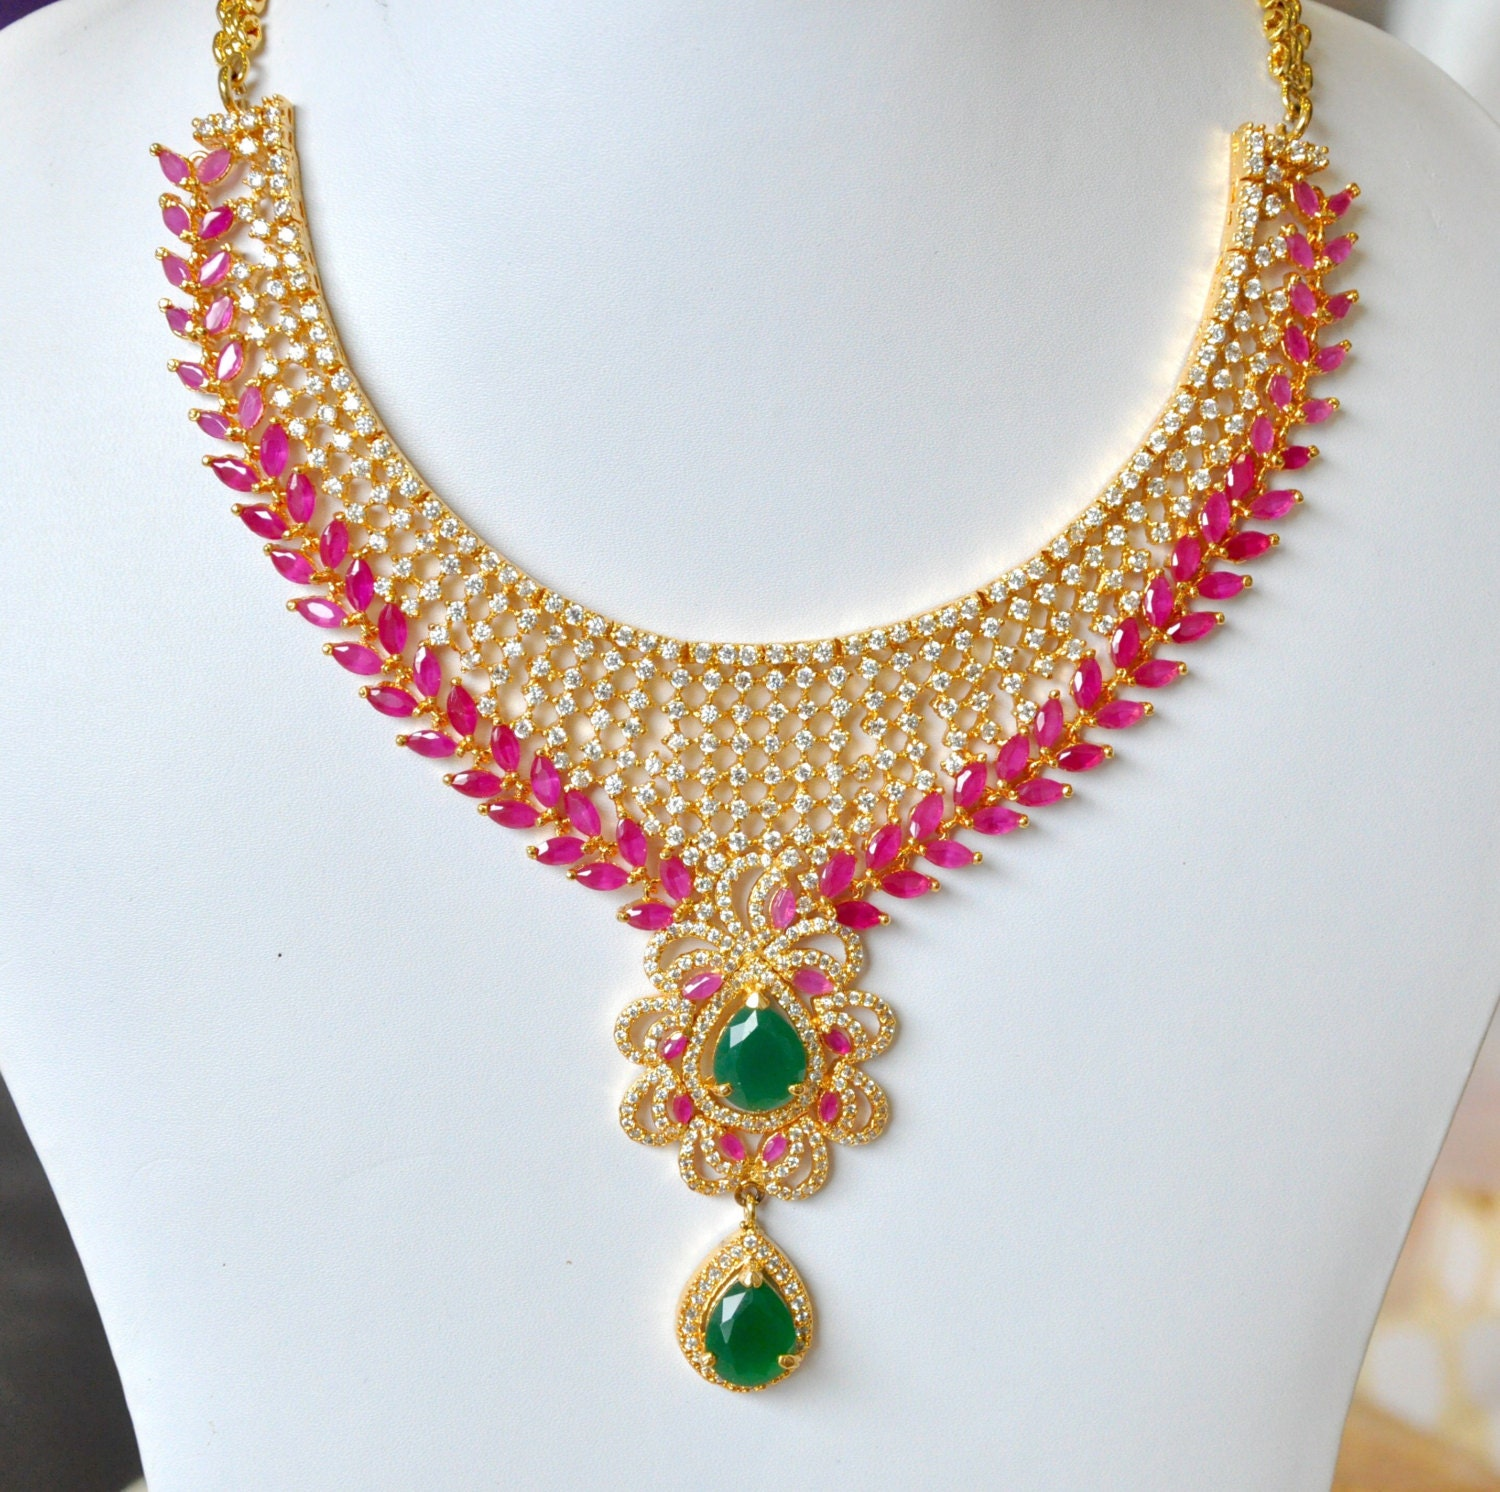 SALE 50% OFF American Diamond bridal Indian necklace set with